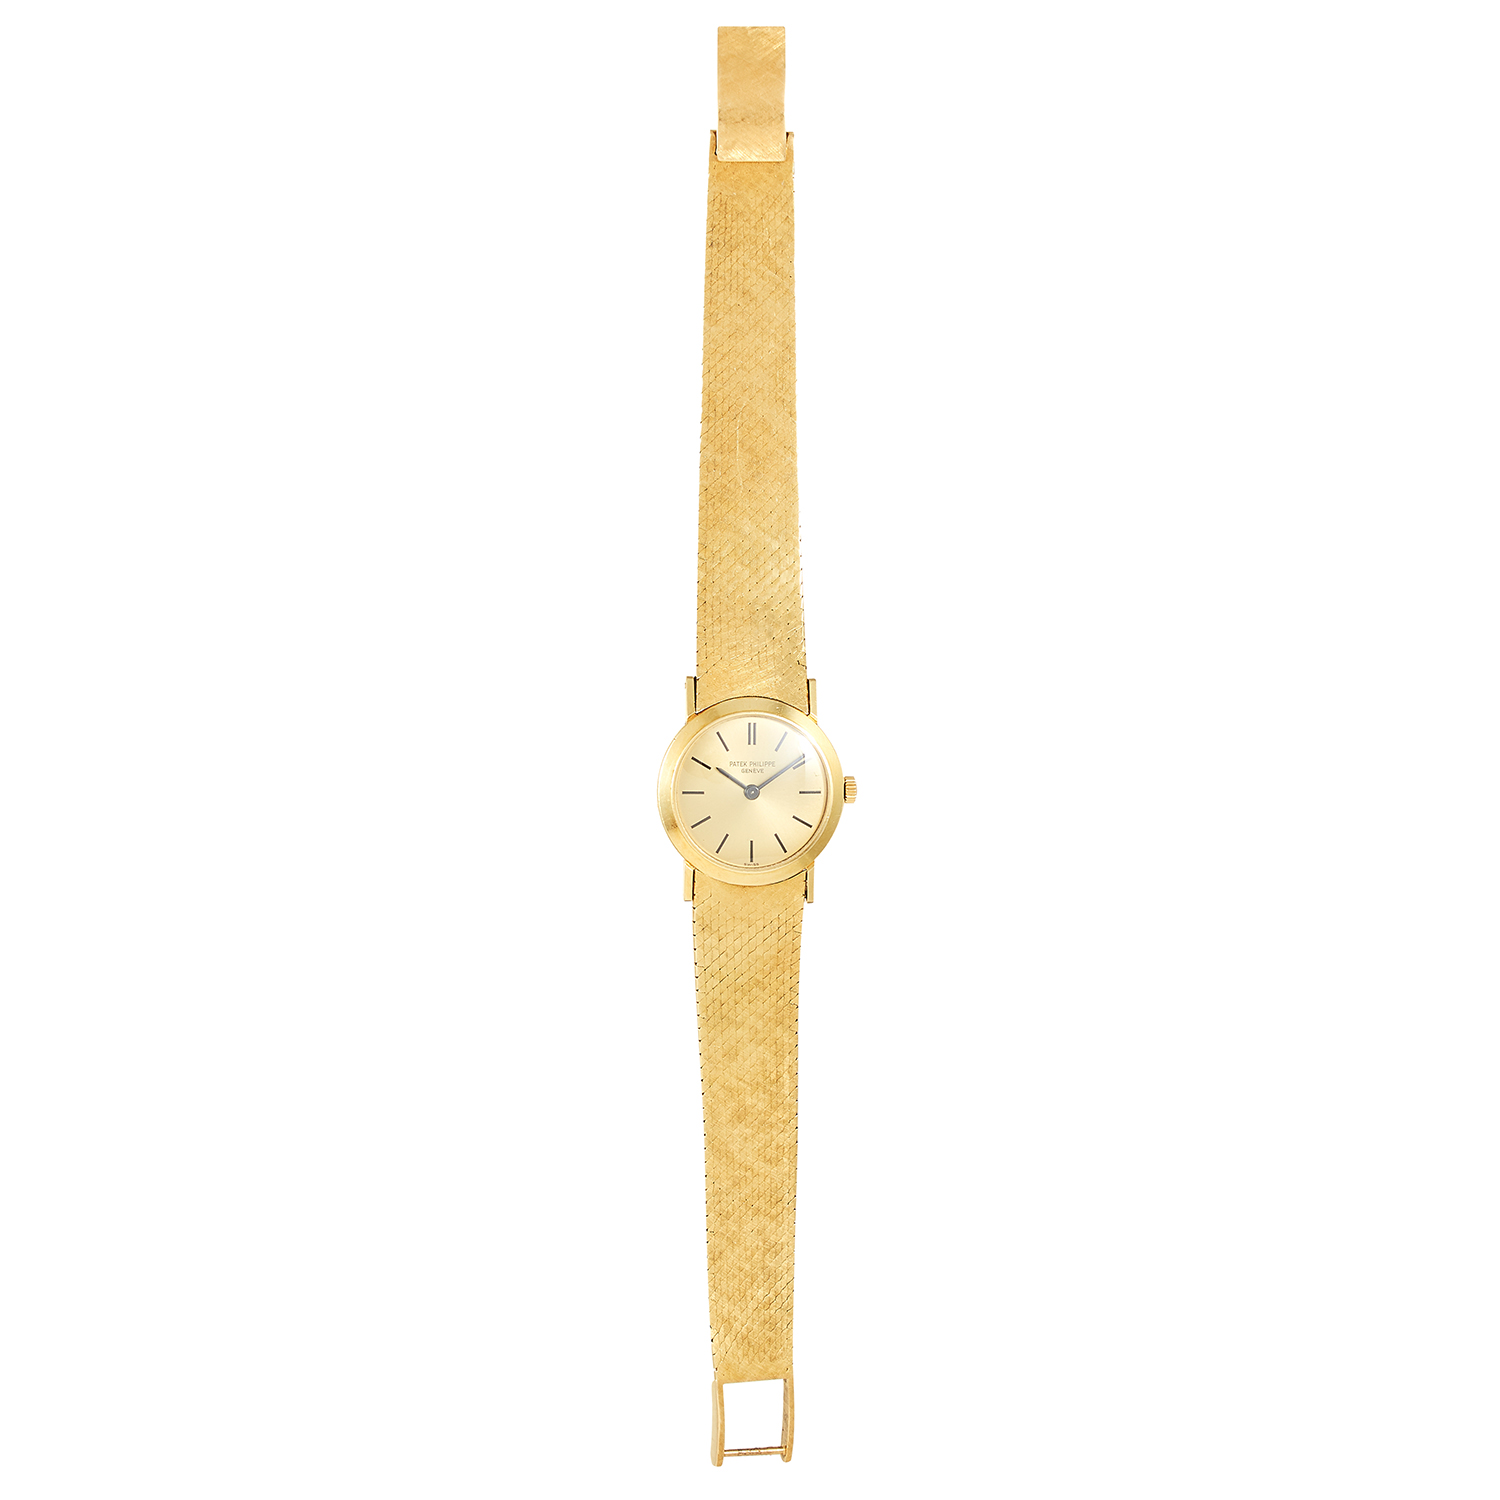 Los 352 - A LADIES WRISTWATCH, PATEK PHILIPPE in 18ct yellow gold, 18cm, 51.01g.